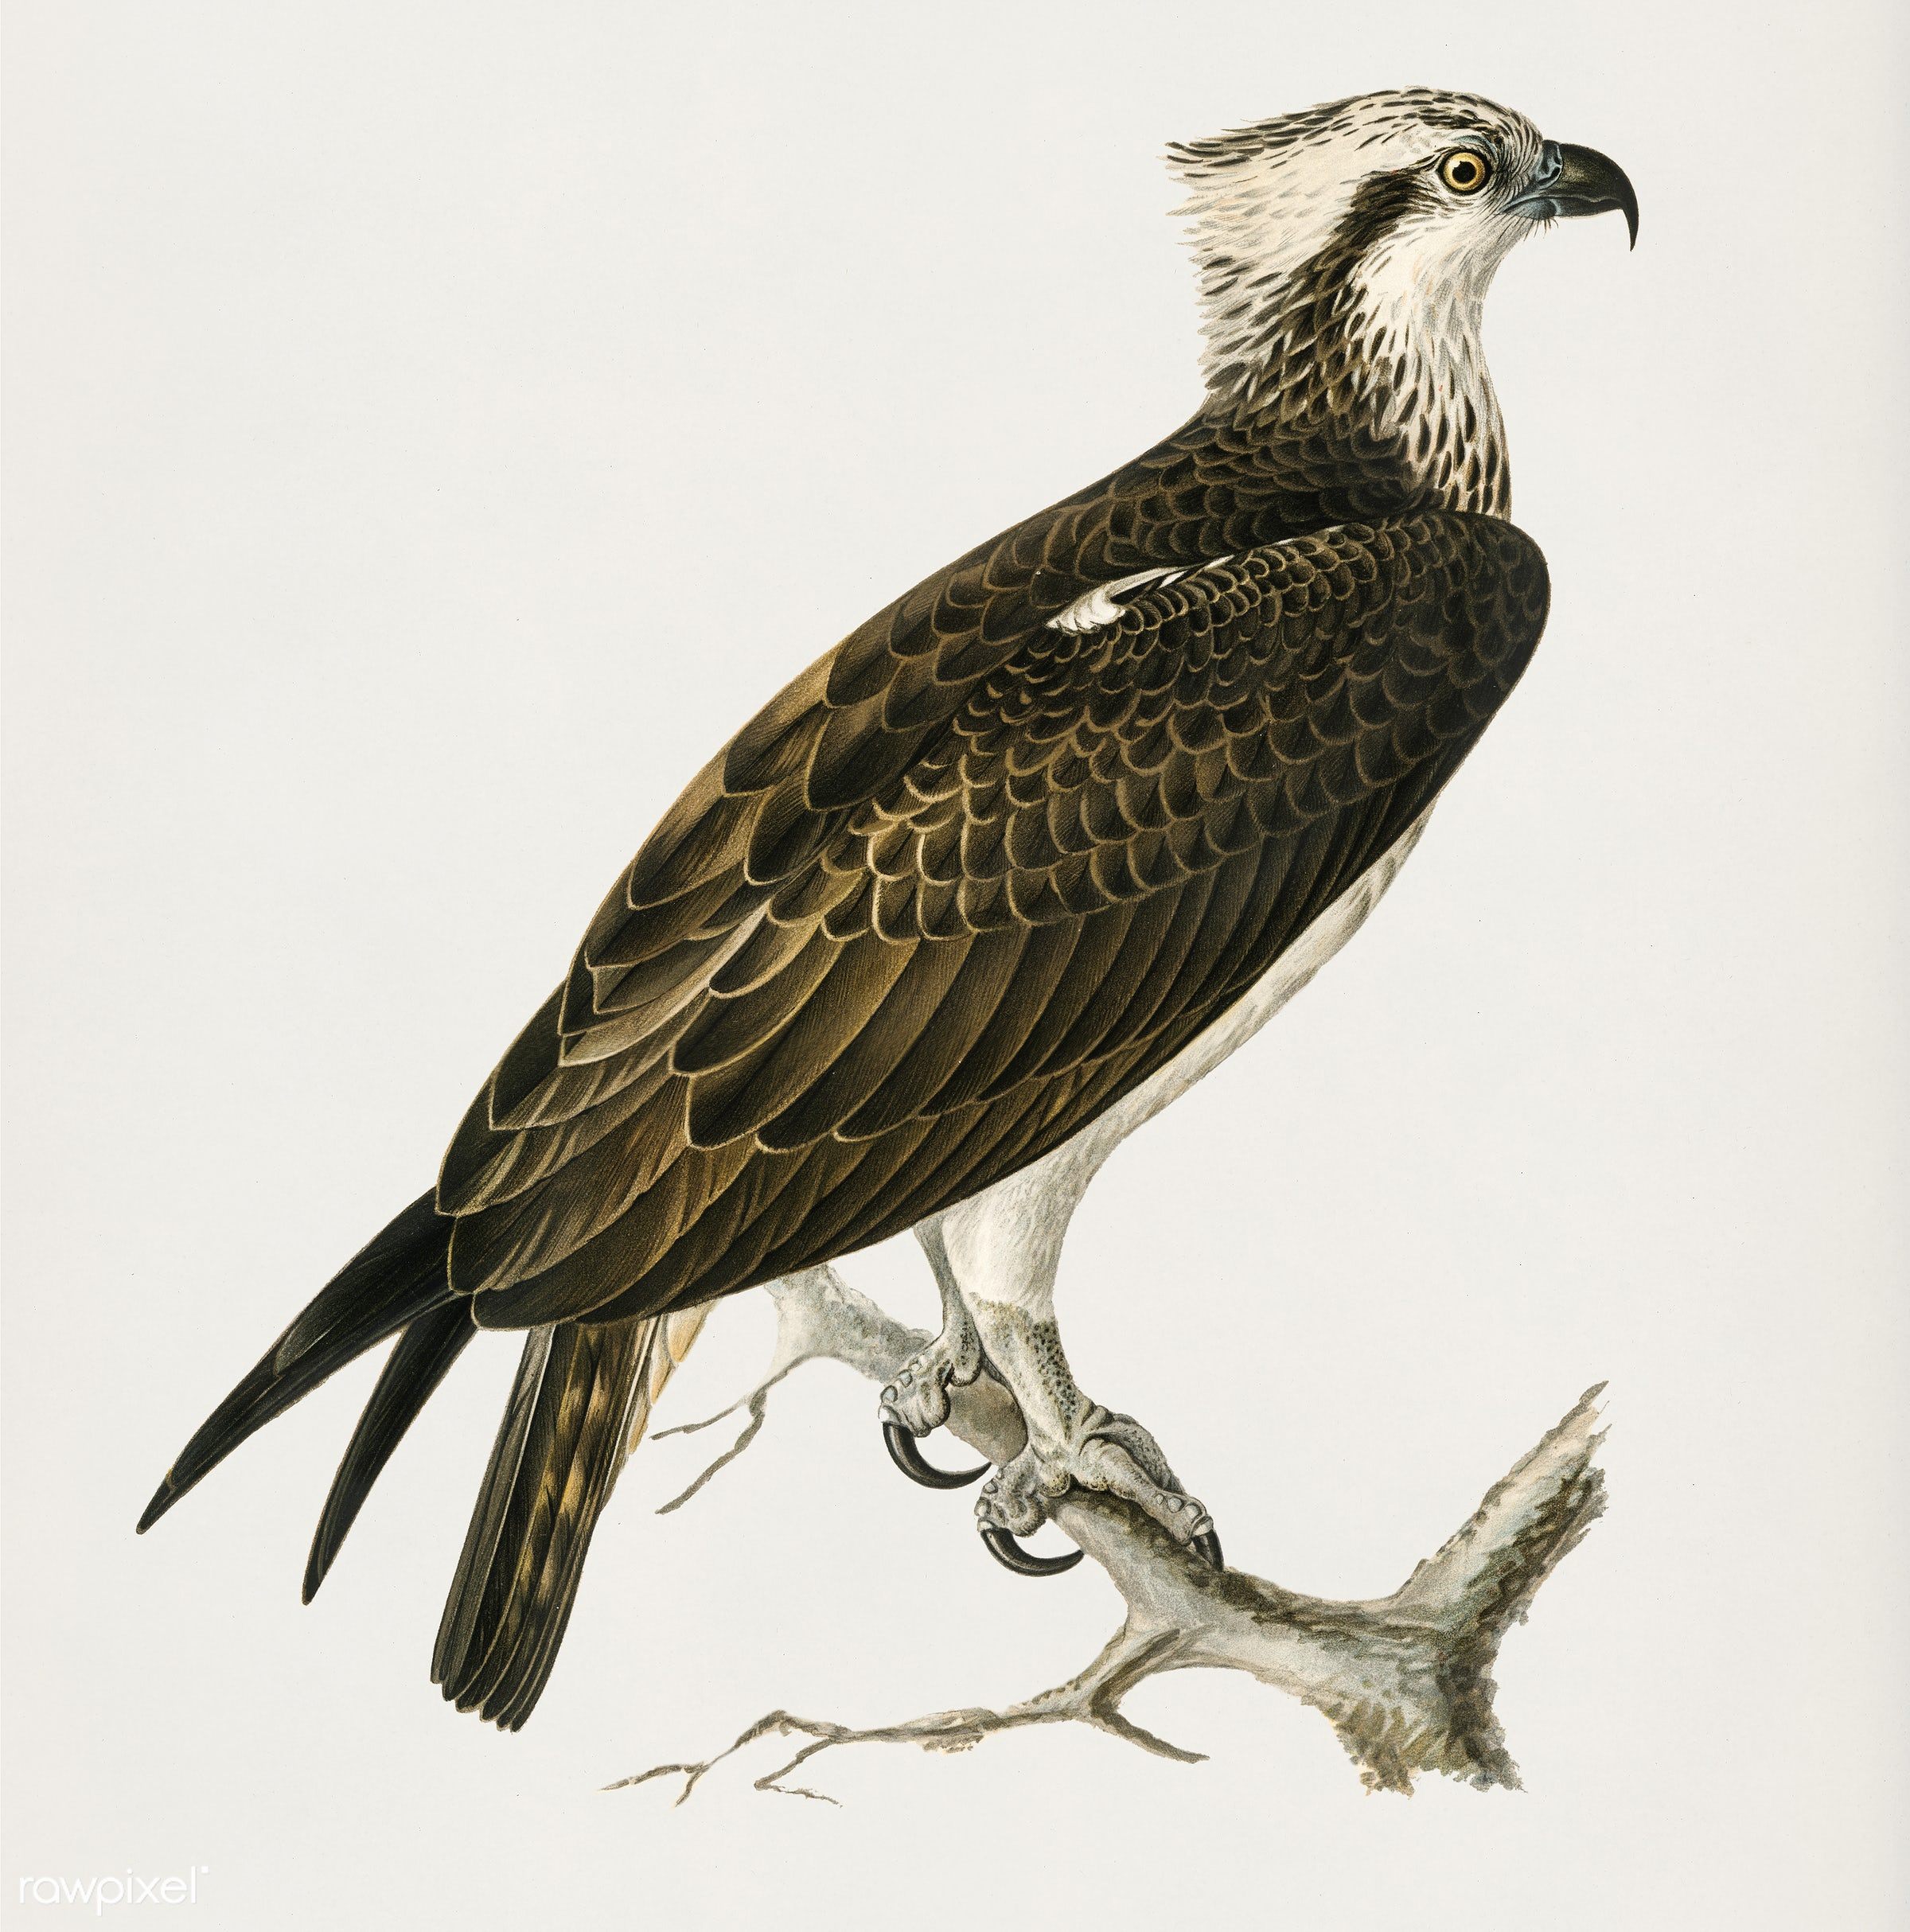 Osprey (Pandion haliaetus) illustrated by the von Wright brothers. Digitally enhanced from our own 1929 folio version of...